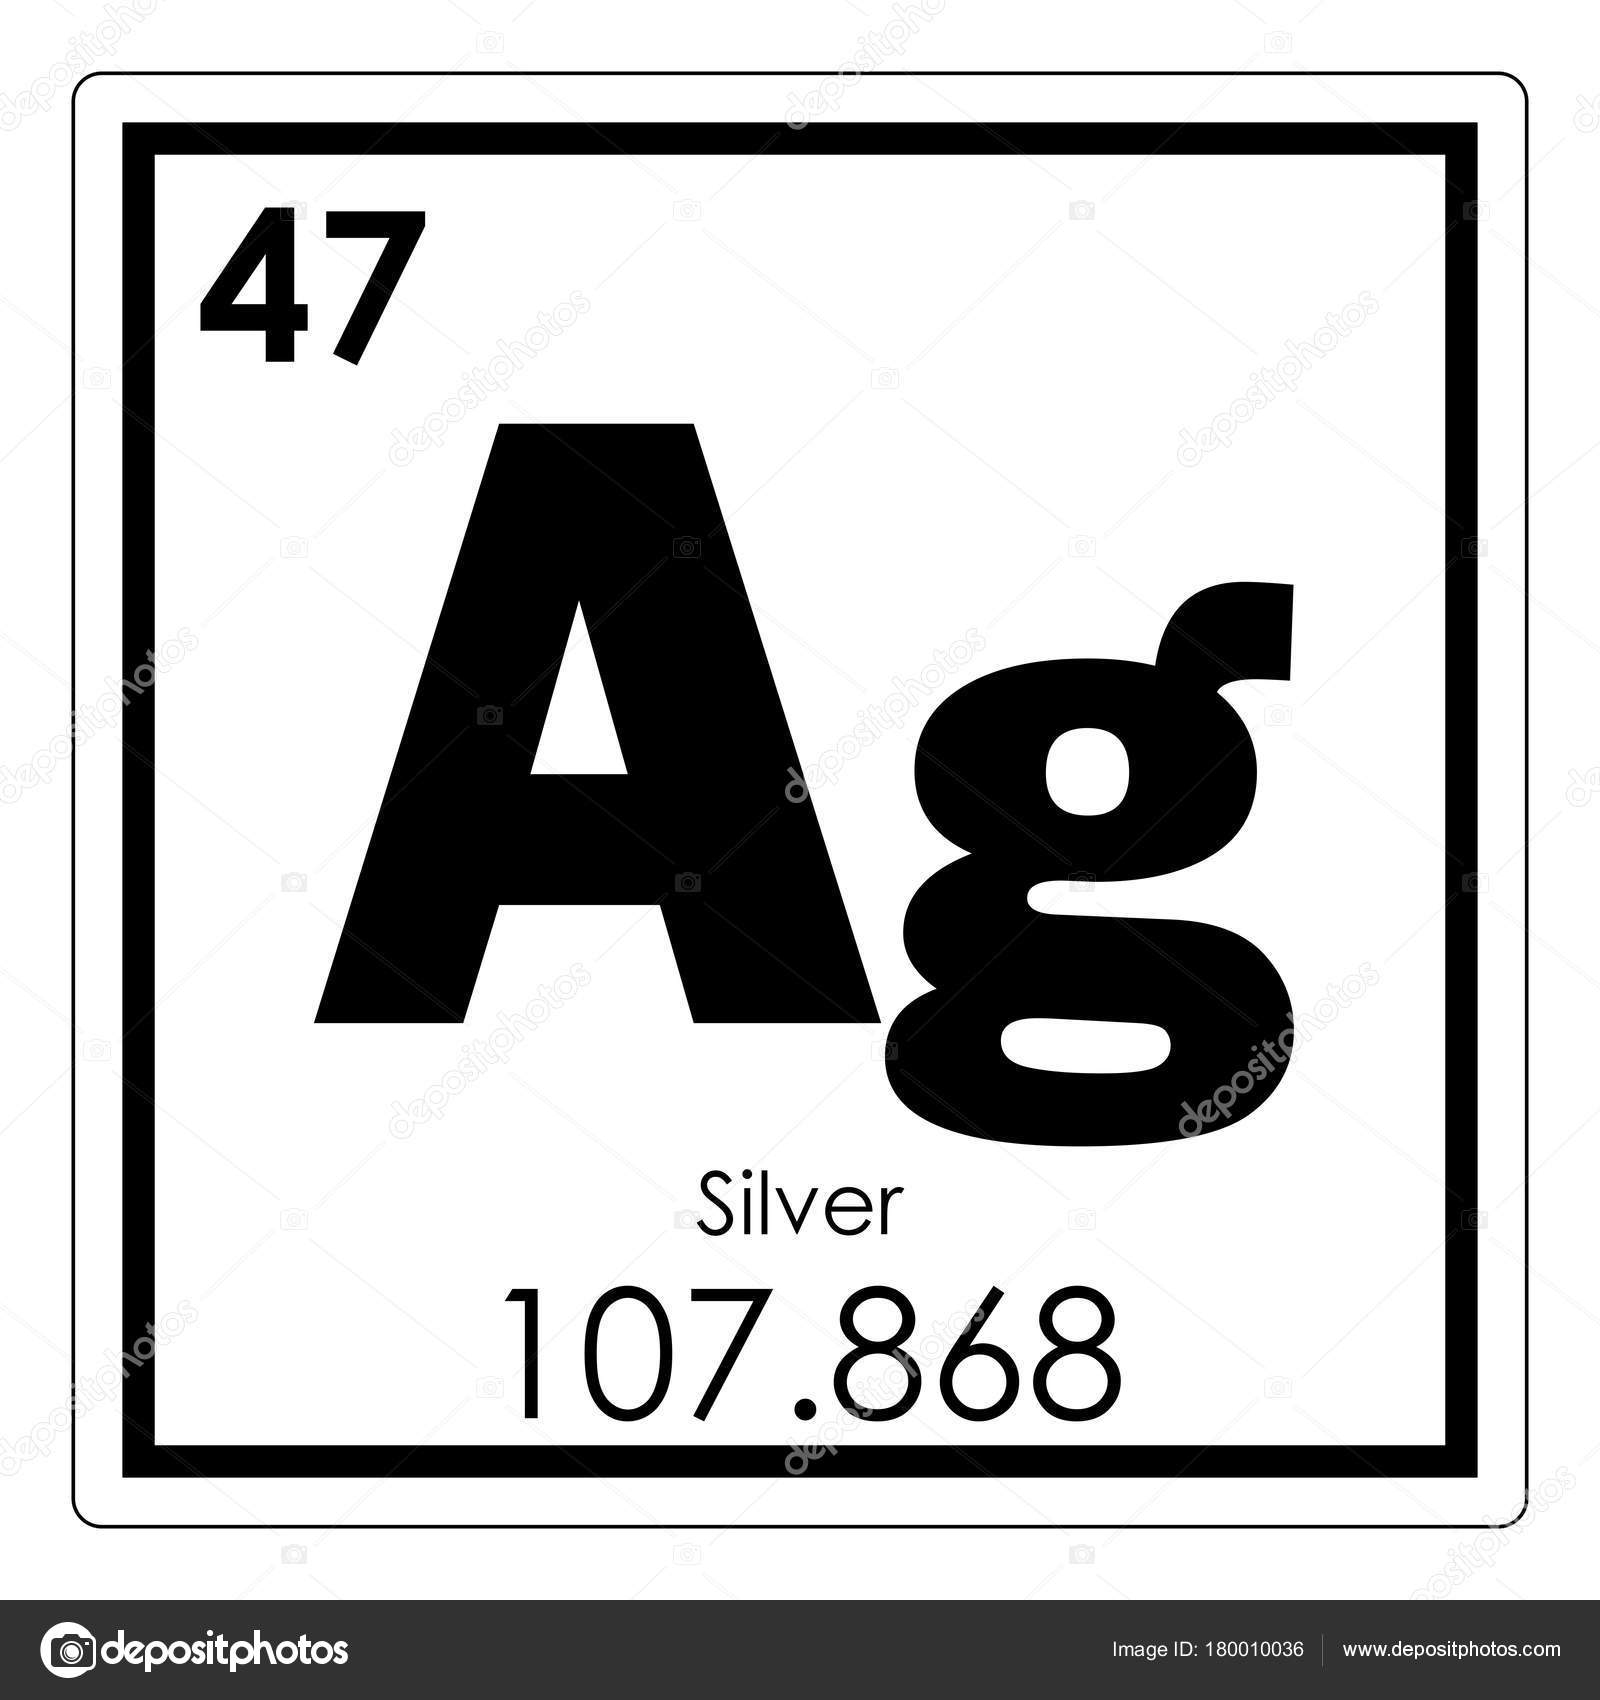 Symbol for silver image collections symbol and sign ideas element symbol for silver gallery symbol and sign ideas periodic table symbol ag gallery symbol and buycottarizona